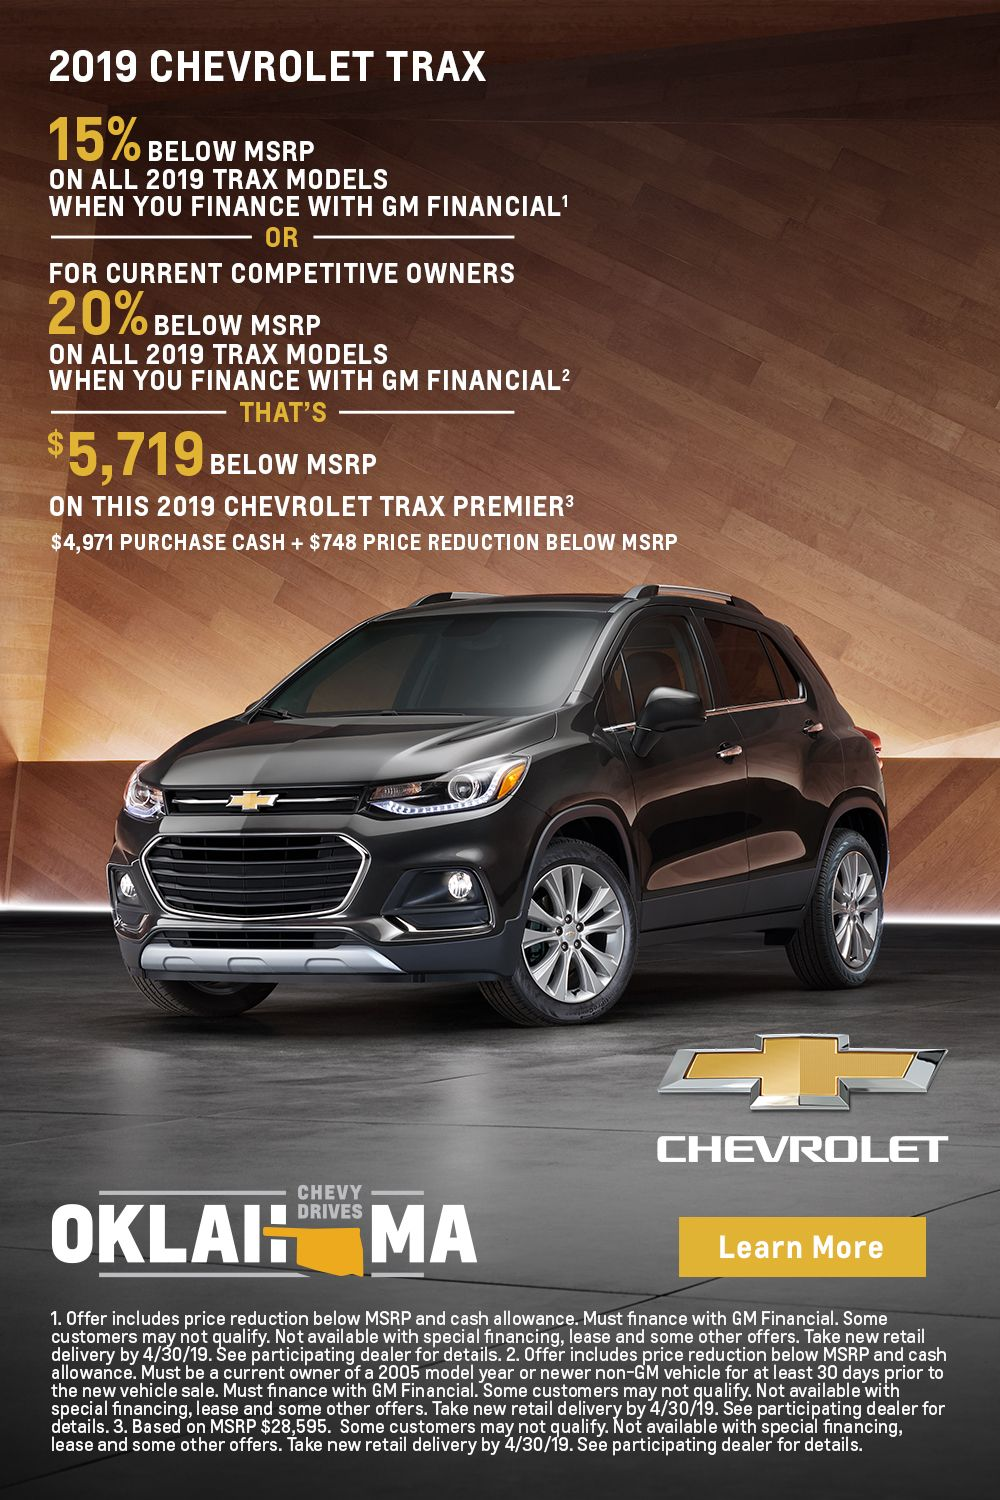 Oklahoma Chevy Dealers >> Shop Now And Visit Your Oklahoma Chevy Team Dealers